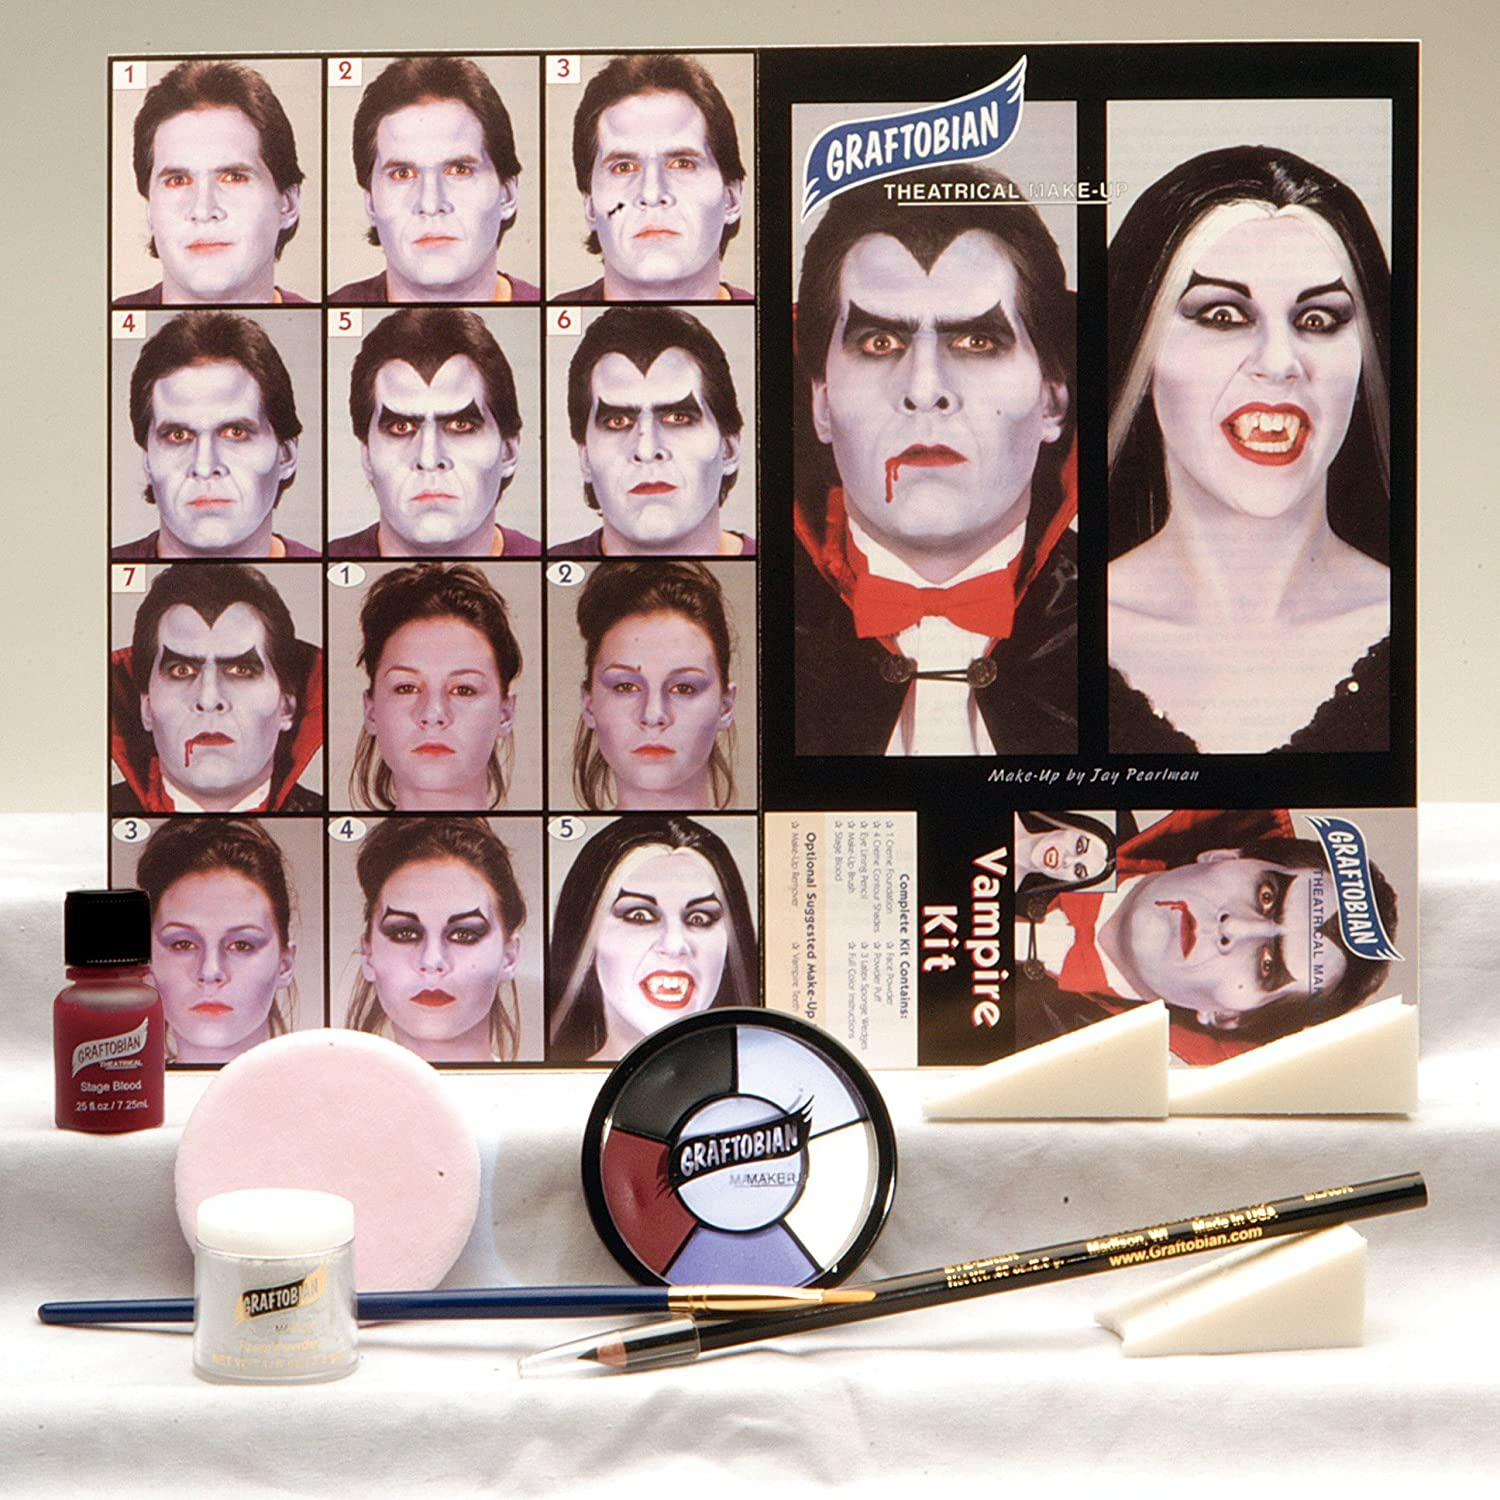 Amazon.com: Vampire Makeup Kit: Health & Personal Care